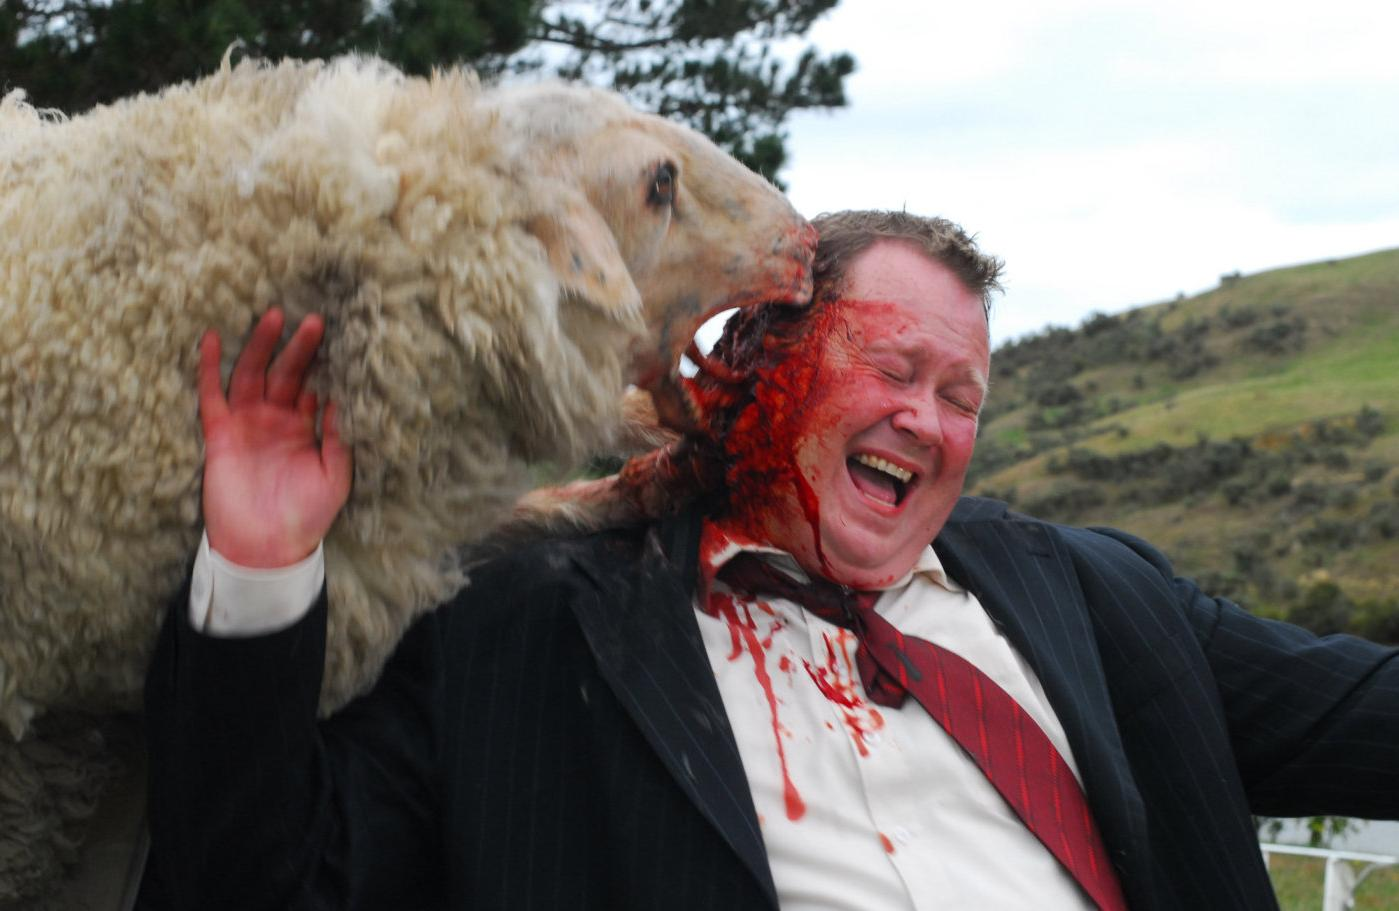 Mutant sheep attacks in Black Sheep (2006)